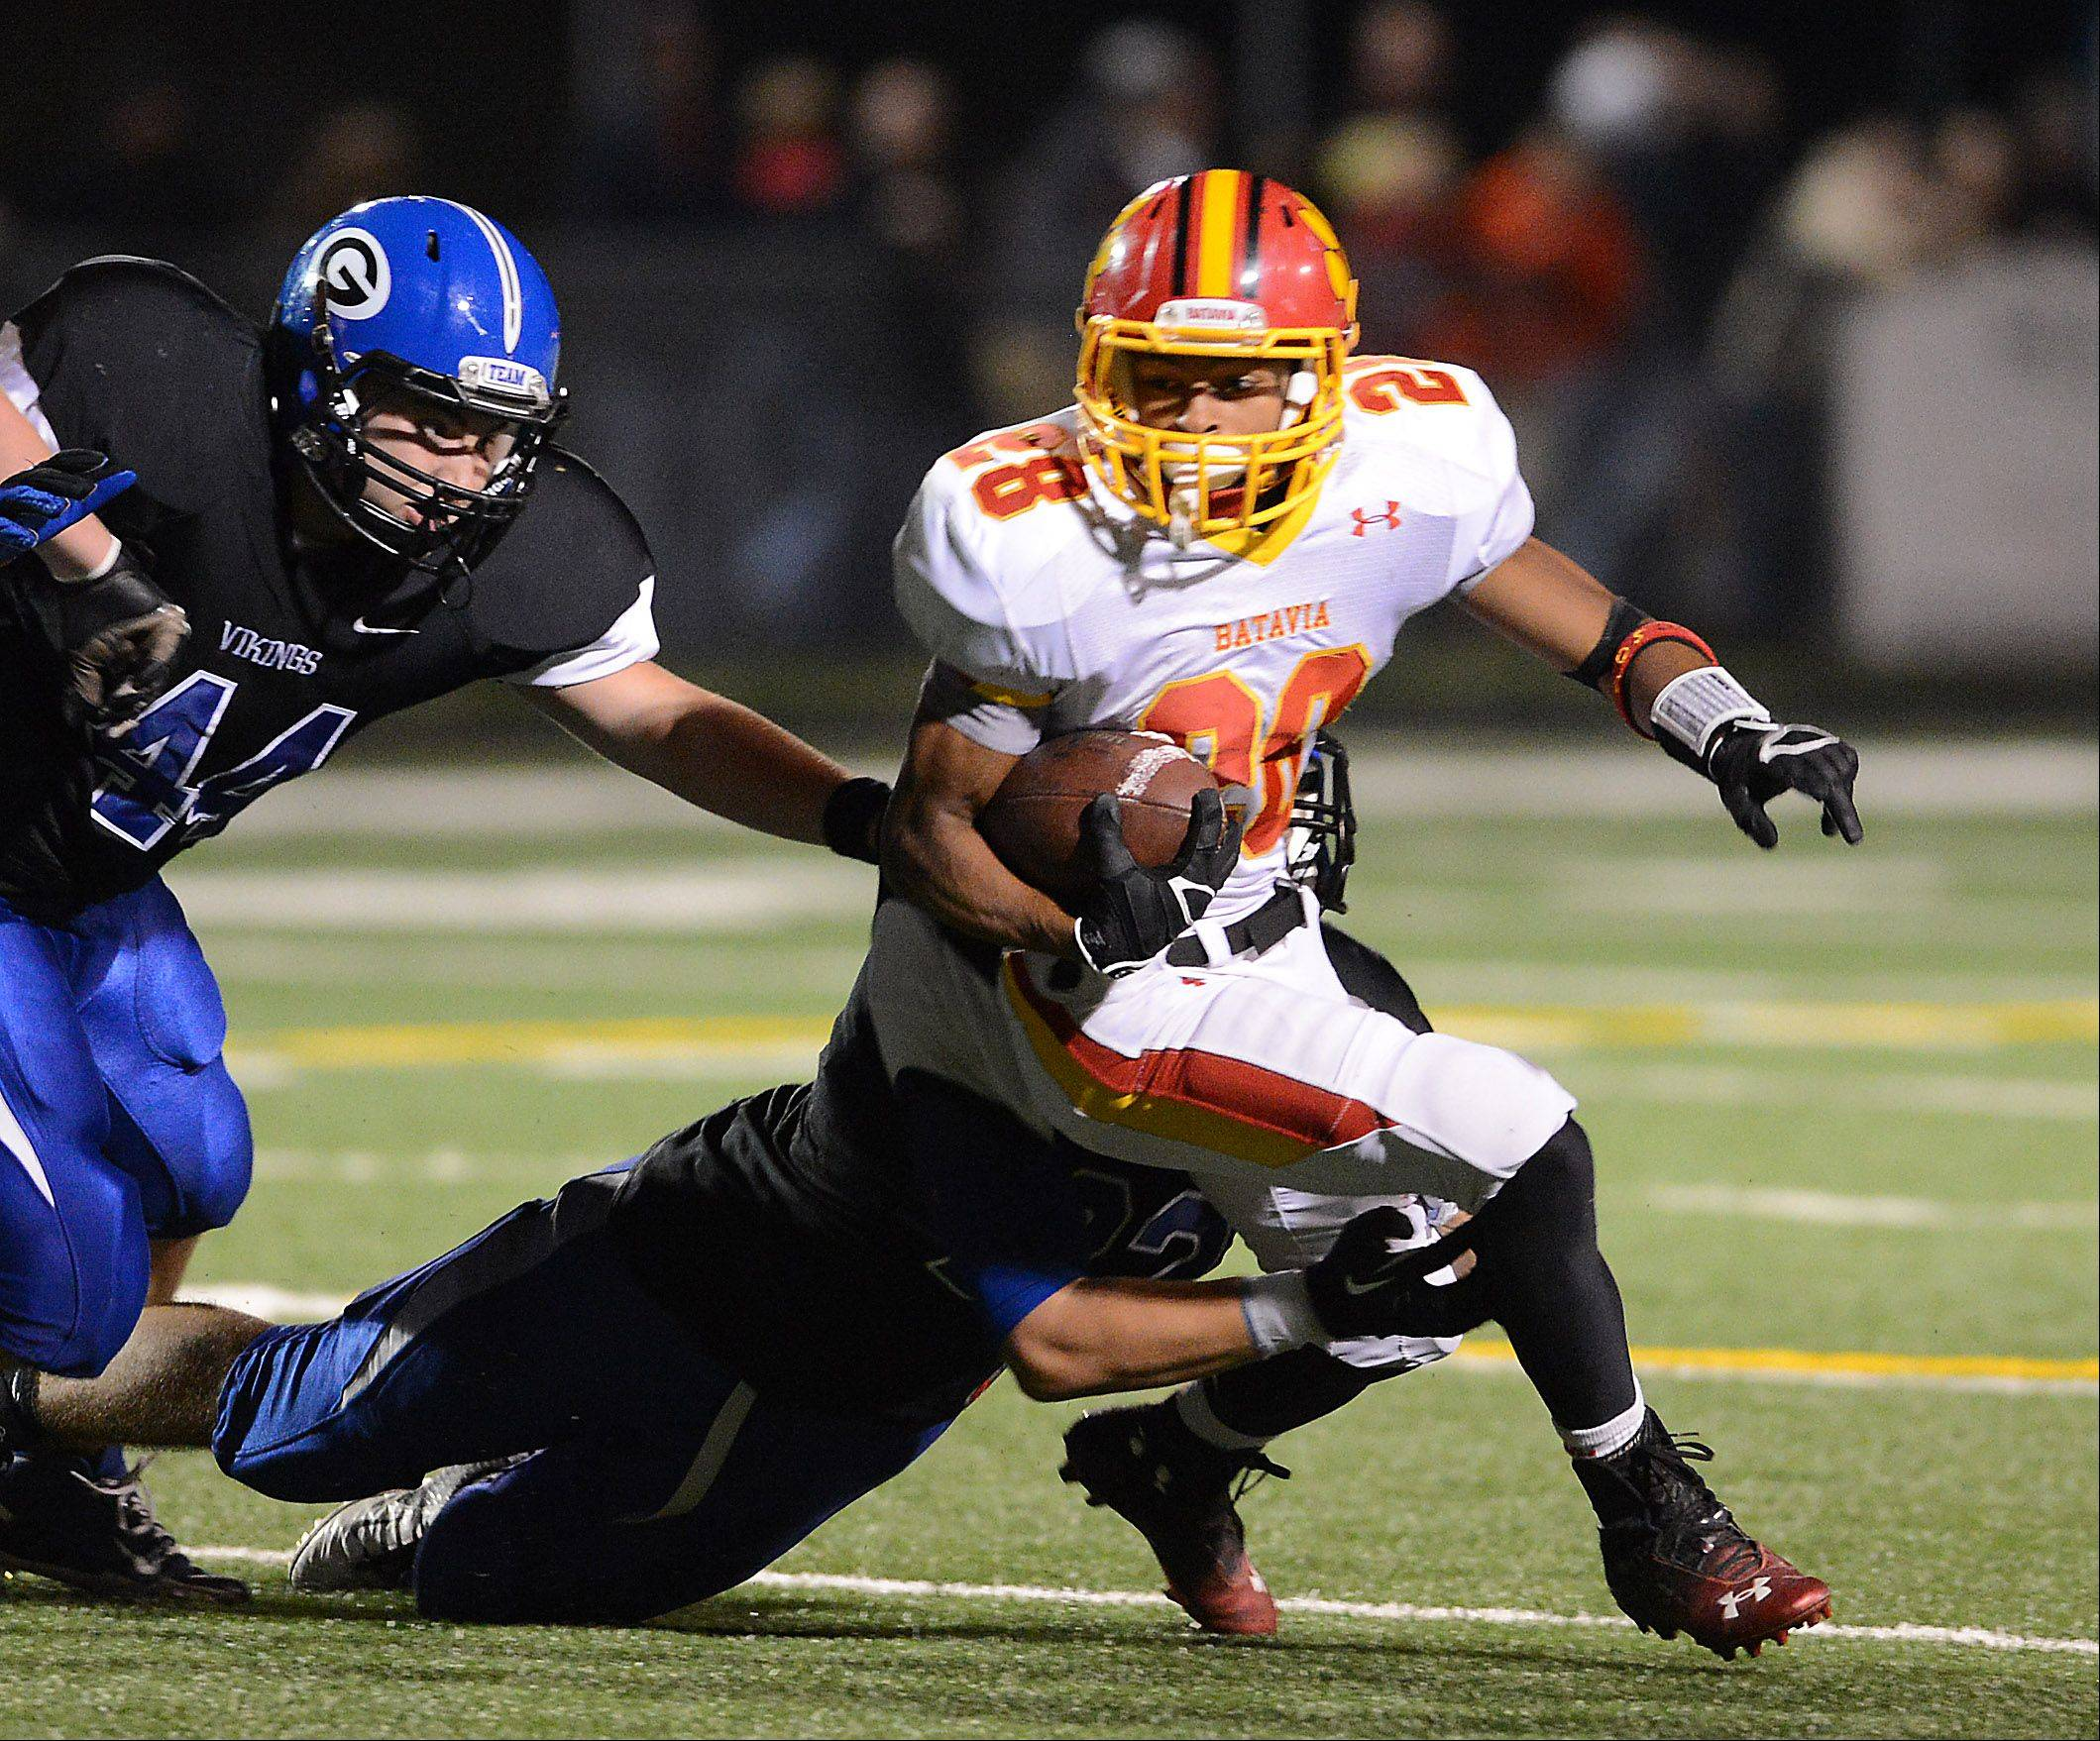 Rick West/rwest@dailyherald.com Week 3 � Images from the Geneva vs. Batavia football game Friday, September 13, 2013.